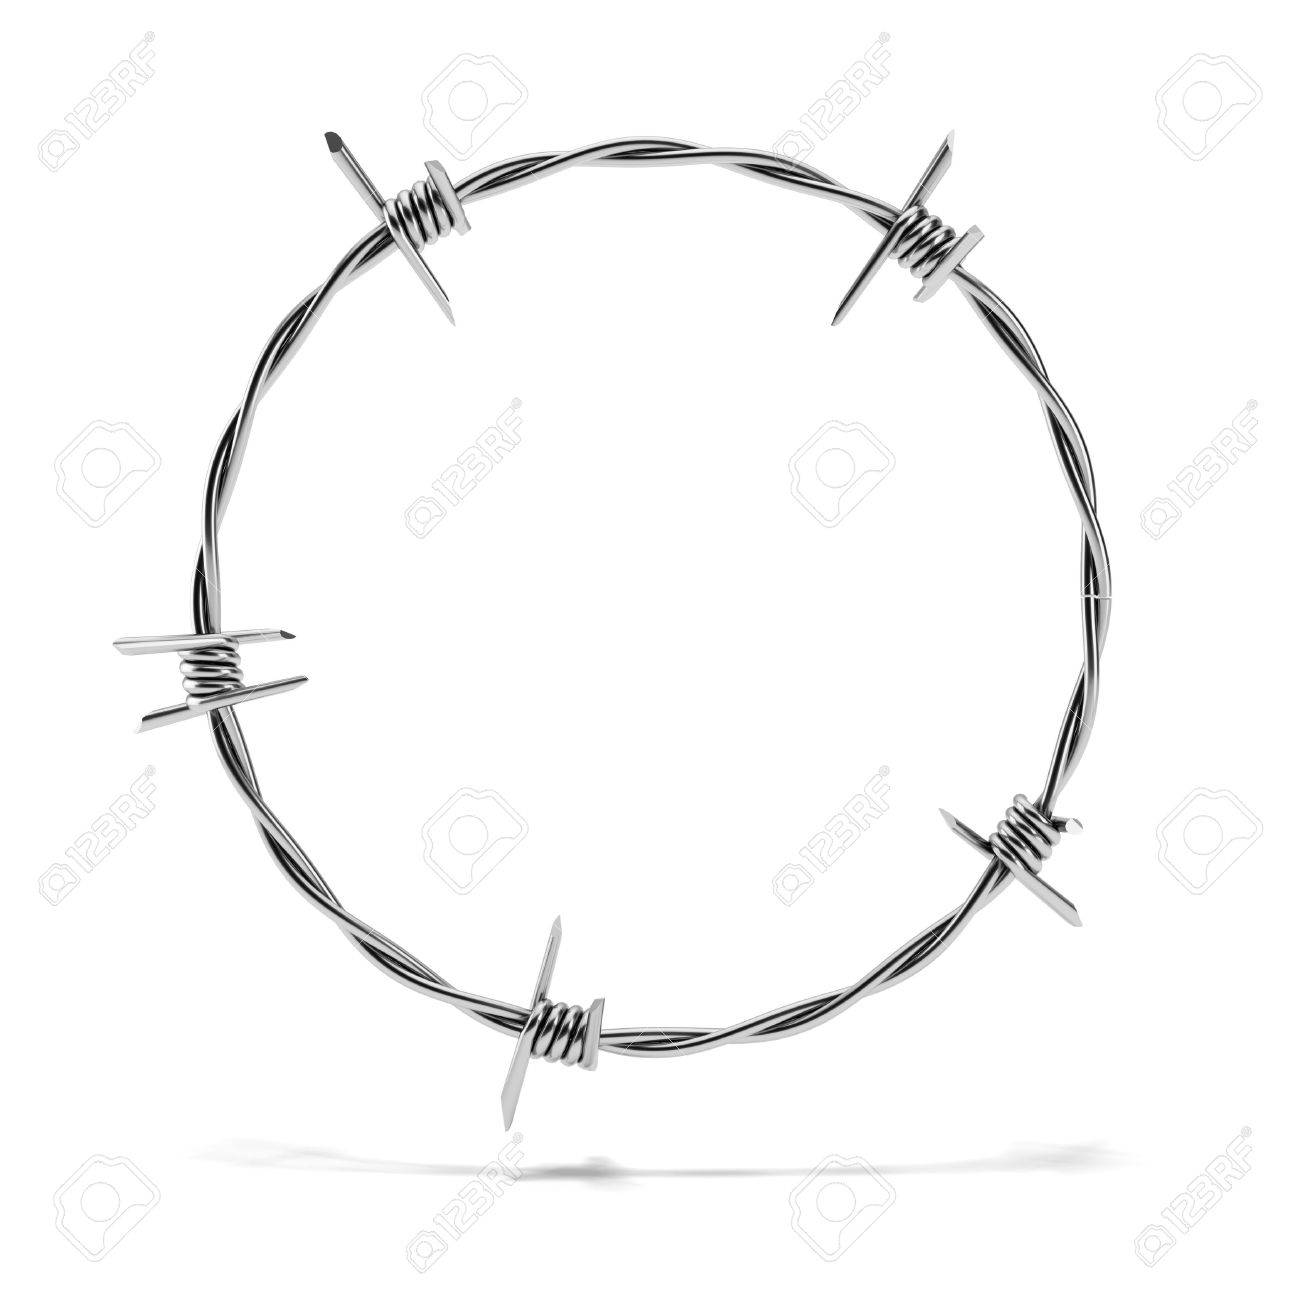 Barbed Wire Circle Stock Photo, Picture And Royalty Free Image ...